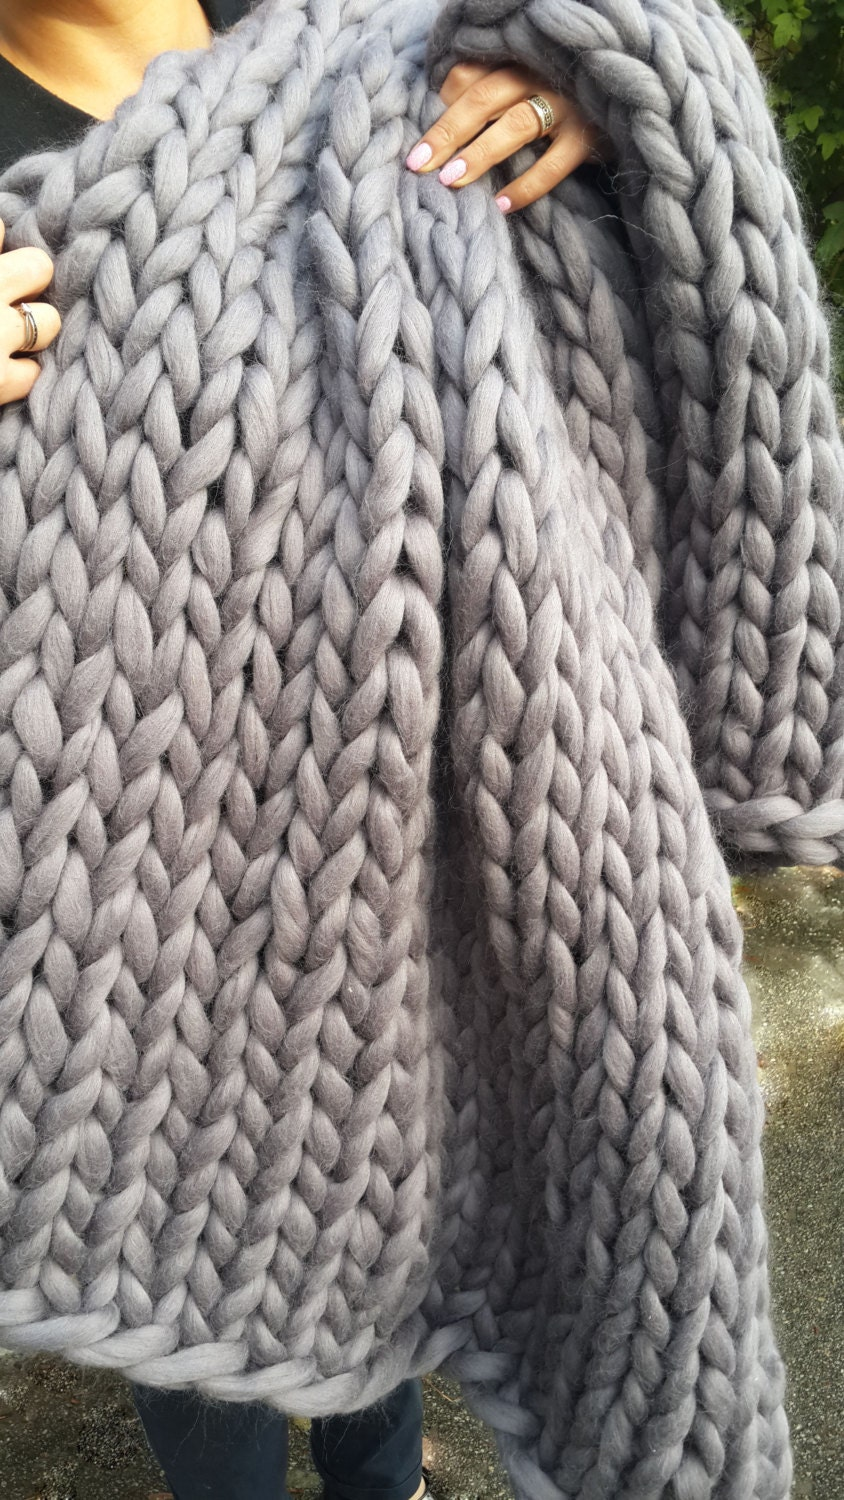 Knitting Wool Blanket : Chunky knit blanket wool knitted